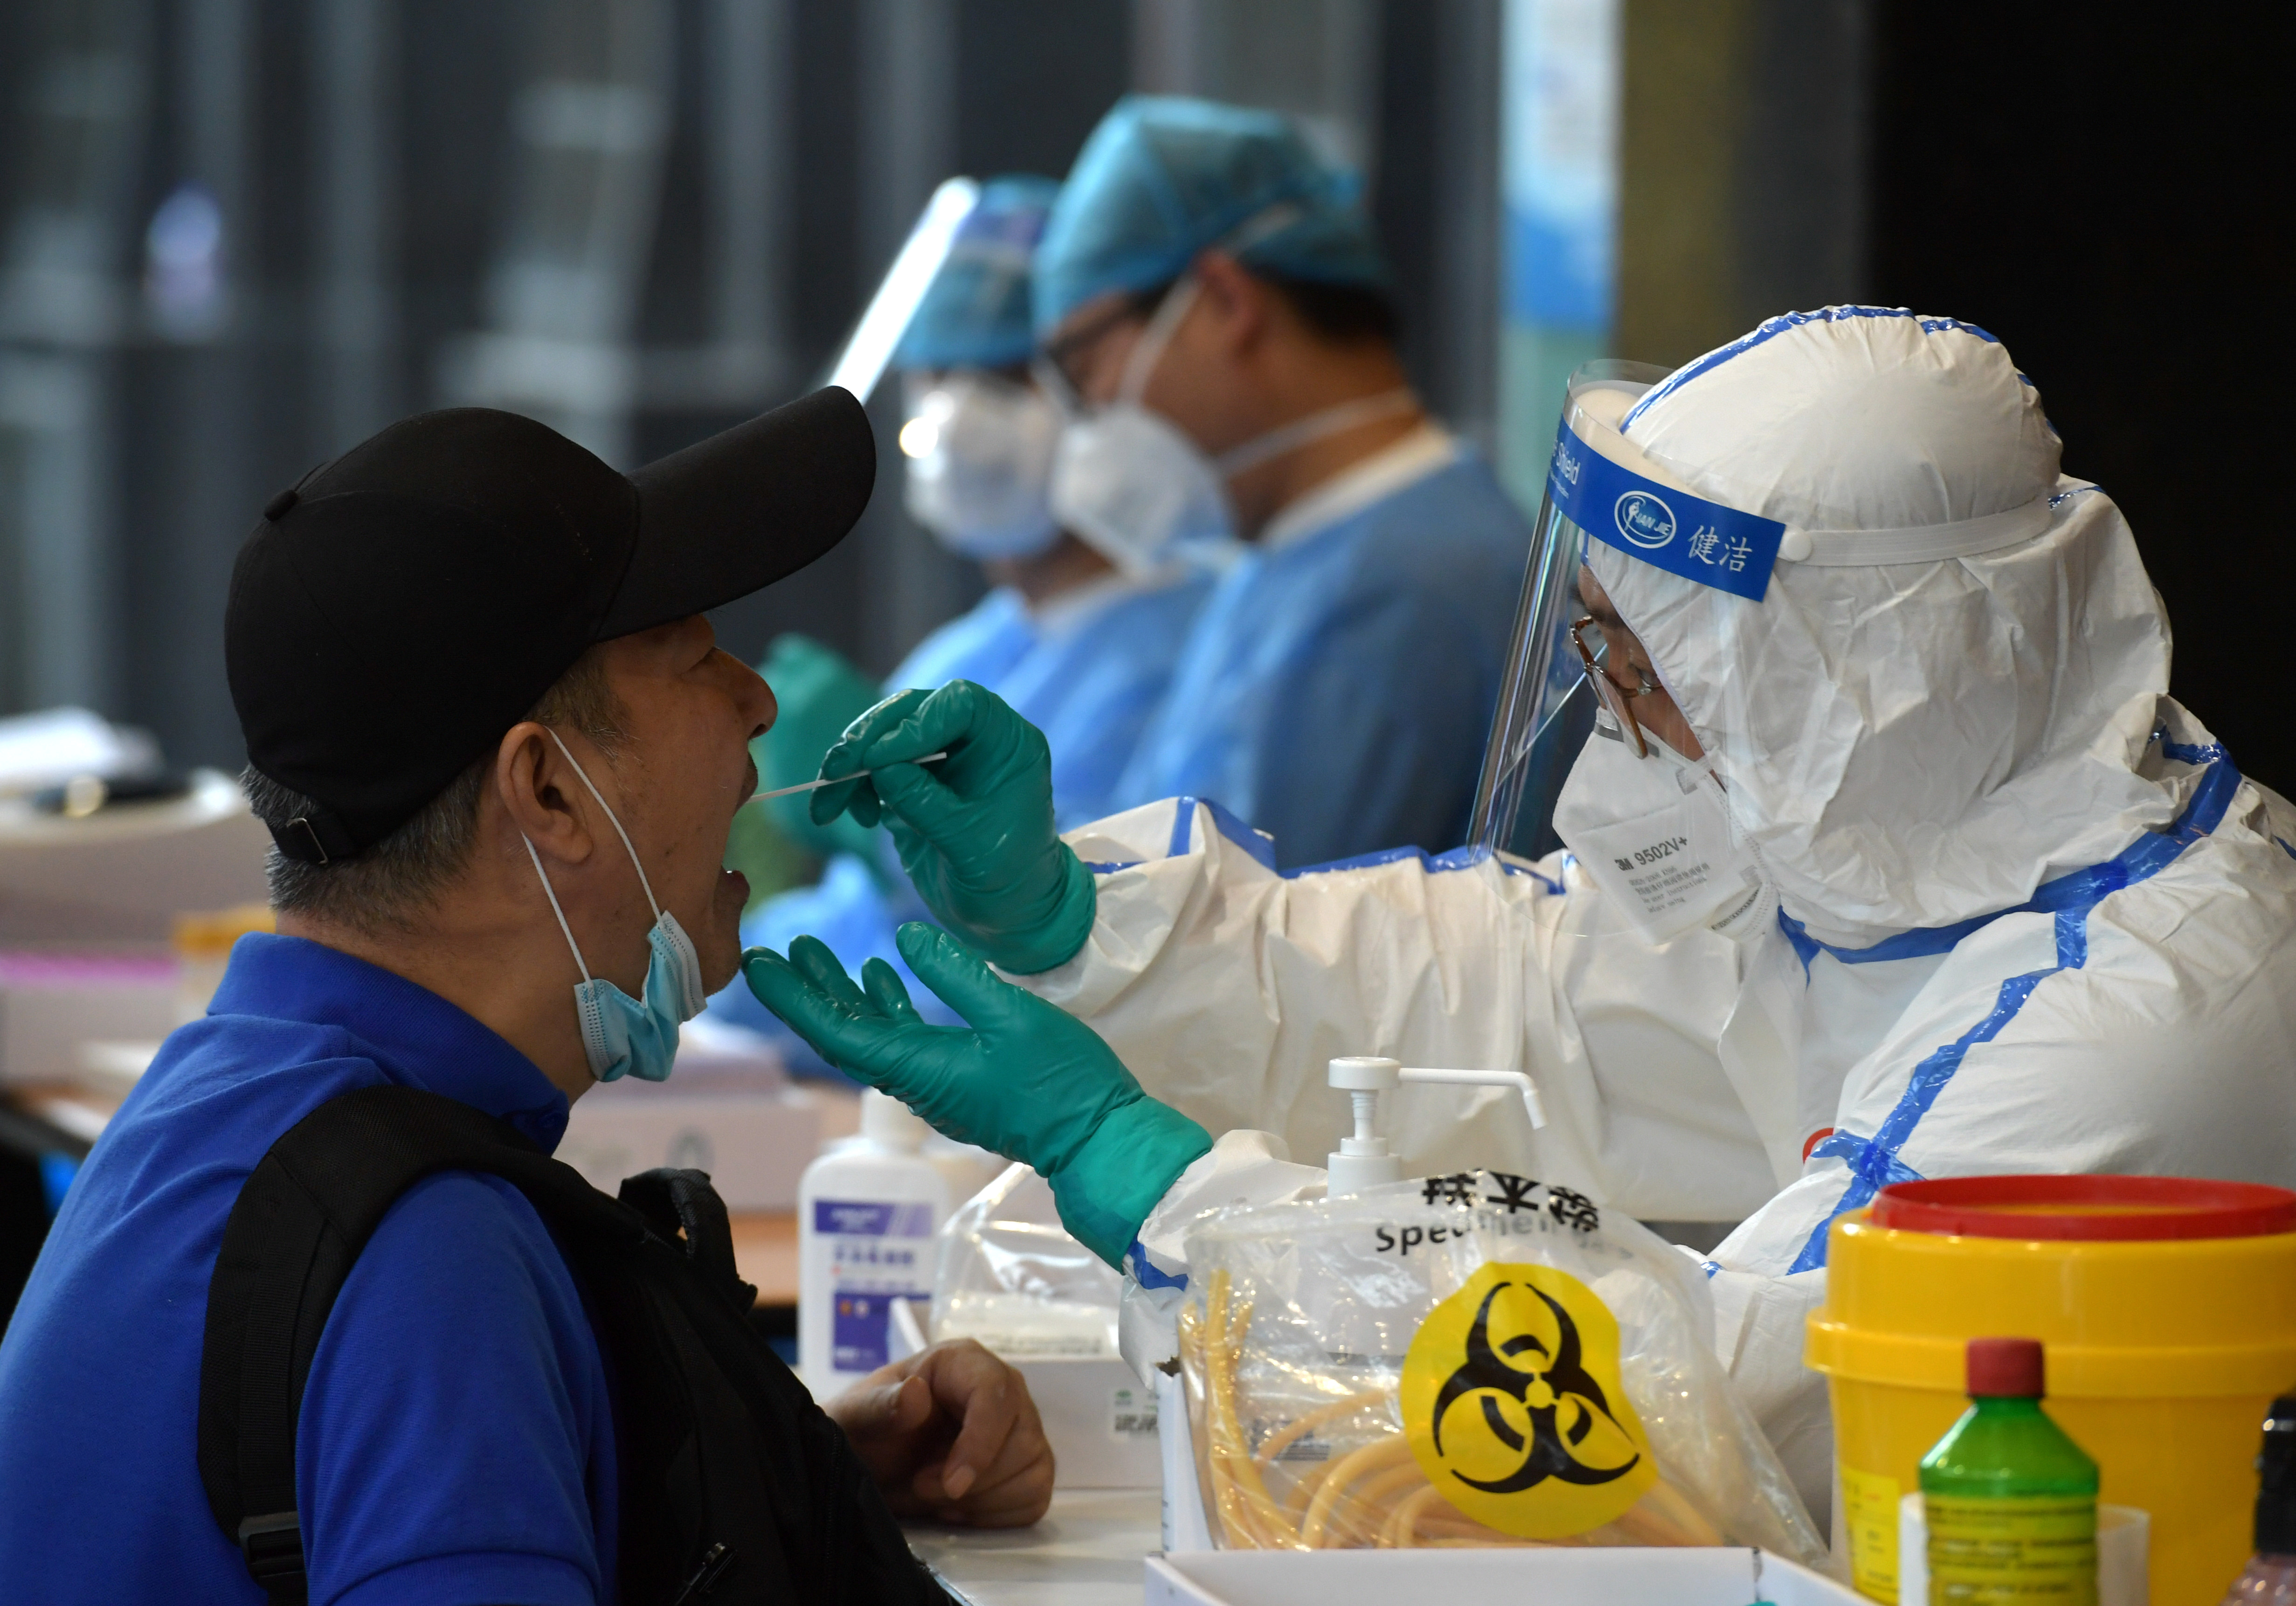 A medical staff in protective suit collects swabs from people who have recently travelled to Beijing for nucleic acid tests, following new cases of coronavirus disease (COVID-19) infections at the Chinese capital, in Nanjing, Jiangsu province, China June 15, 2020. China Daily via REUTERS/Files